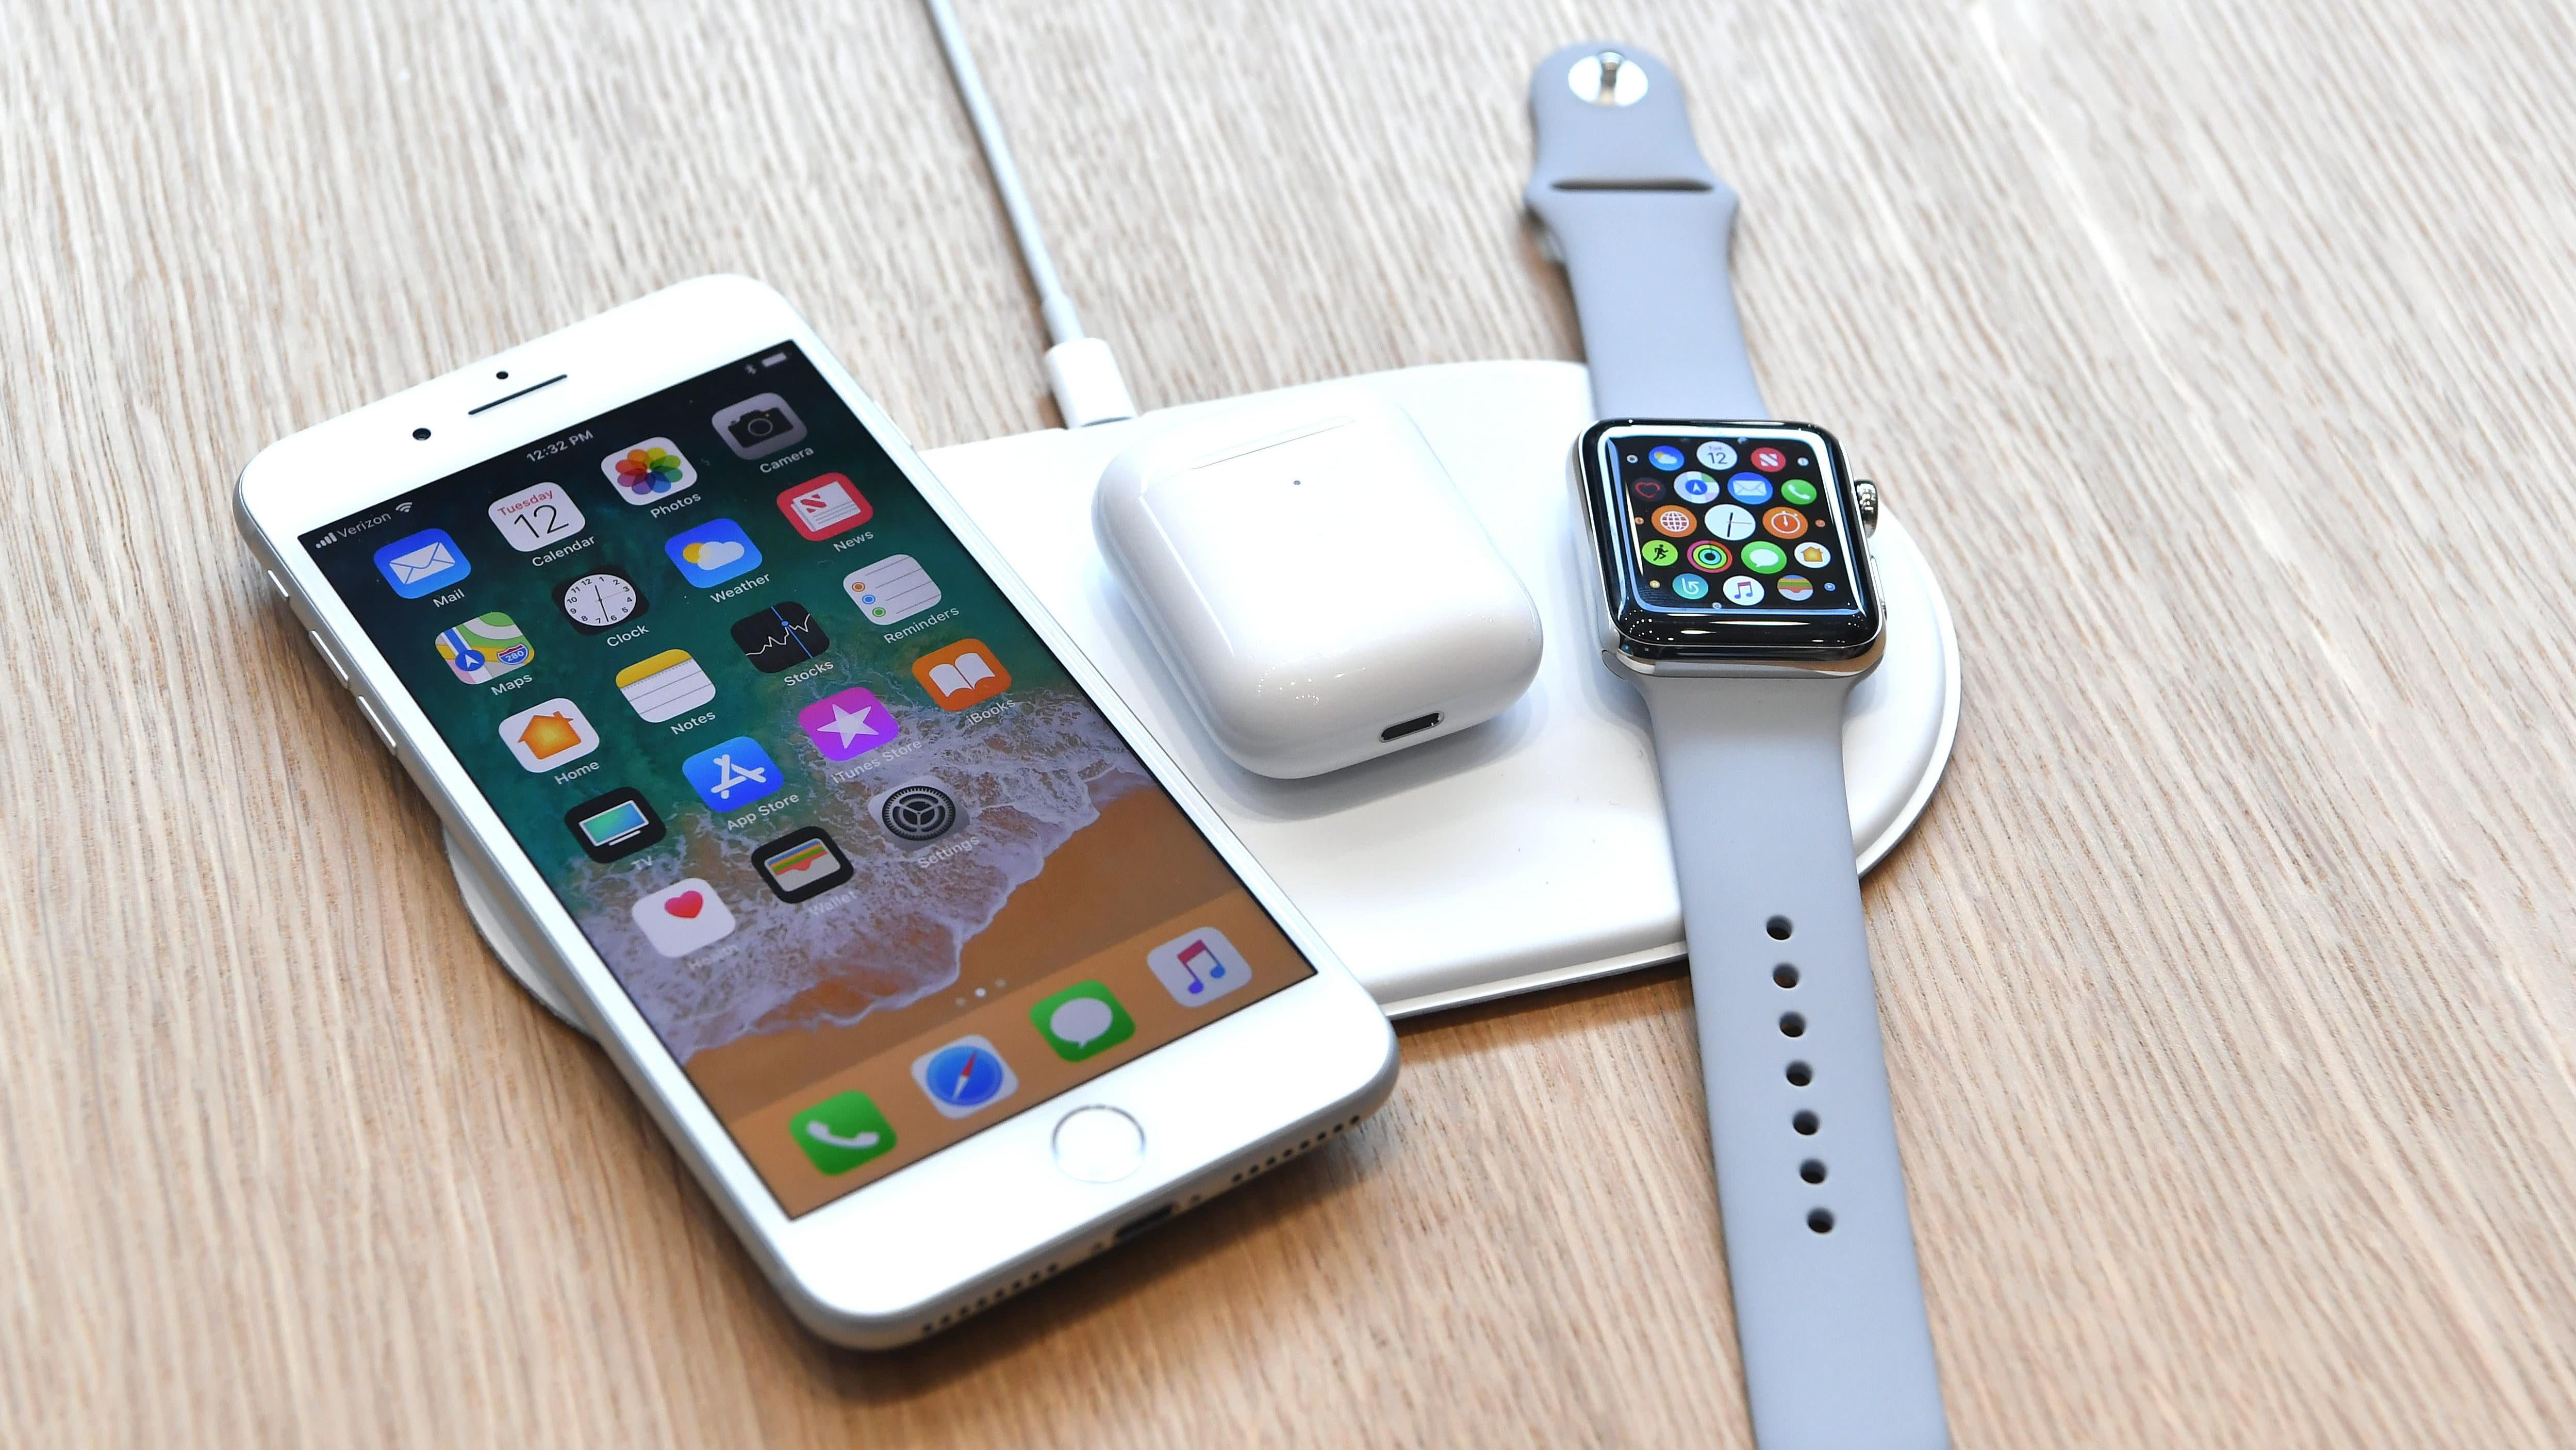 Rumours Claim Apple's AirPower Is Still Alive And The iPhone 9 Is In Production